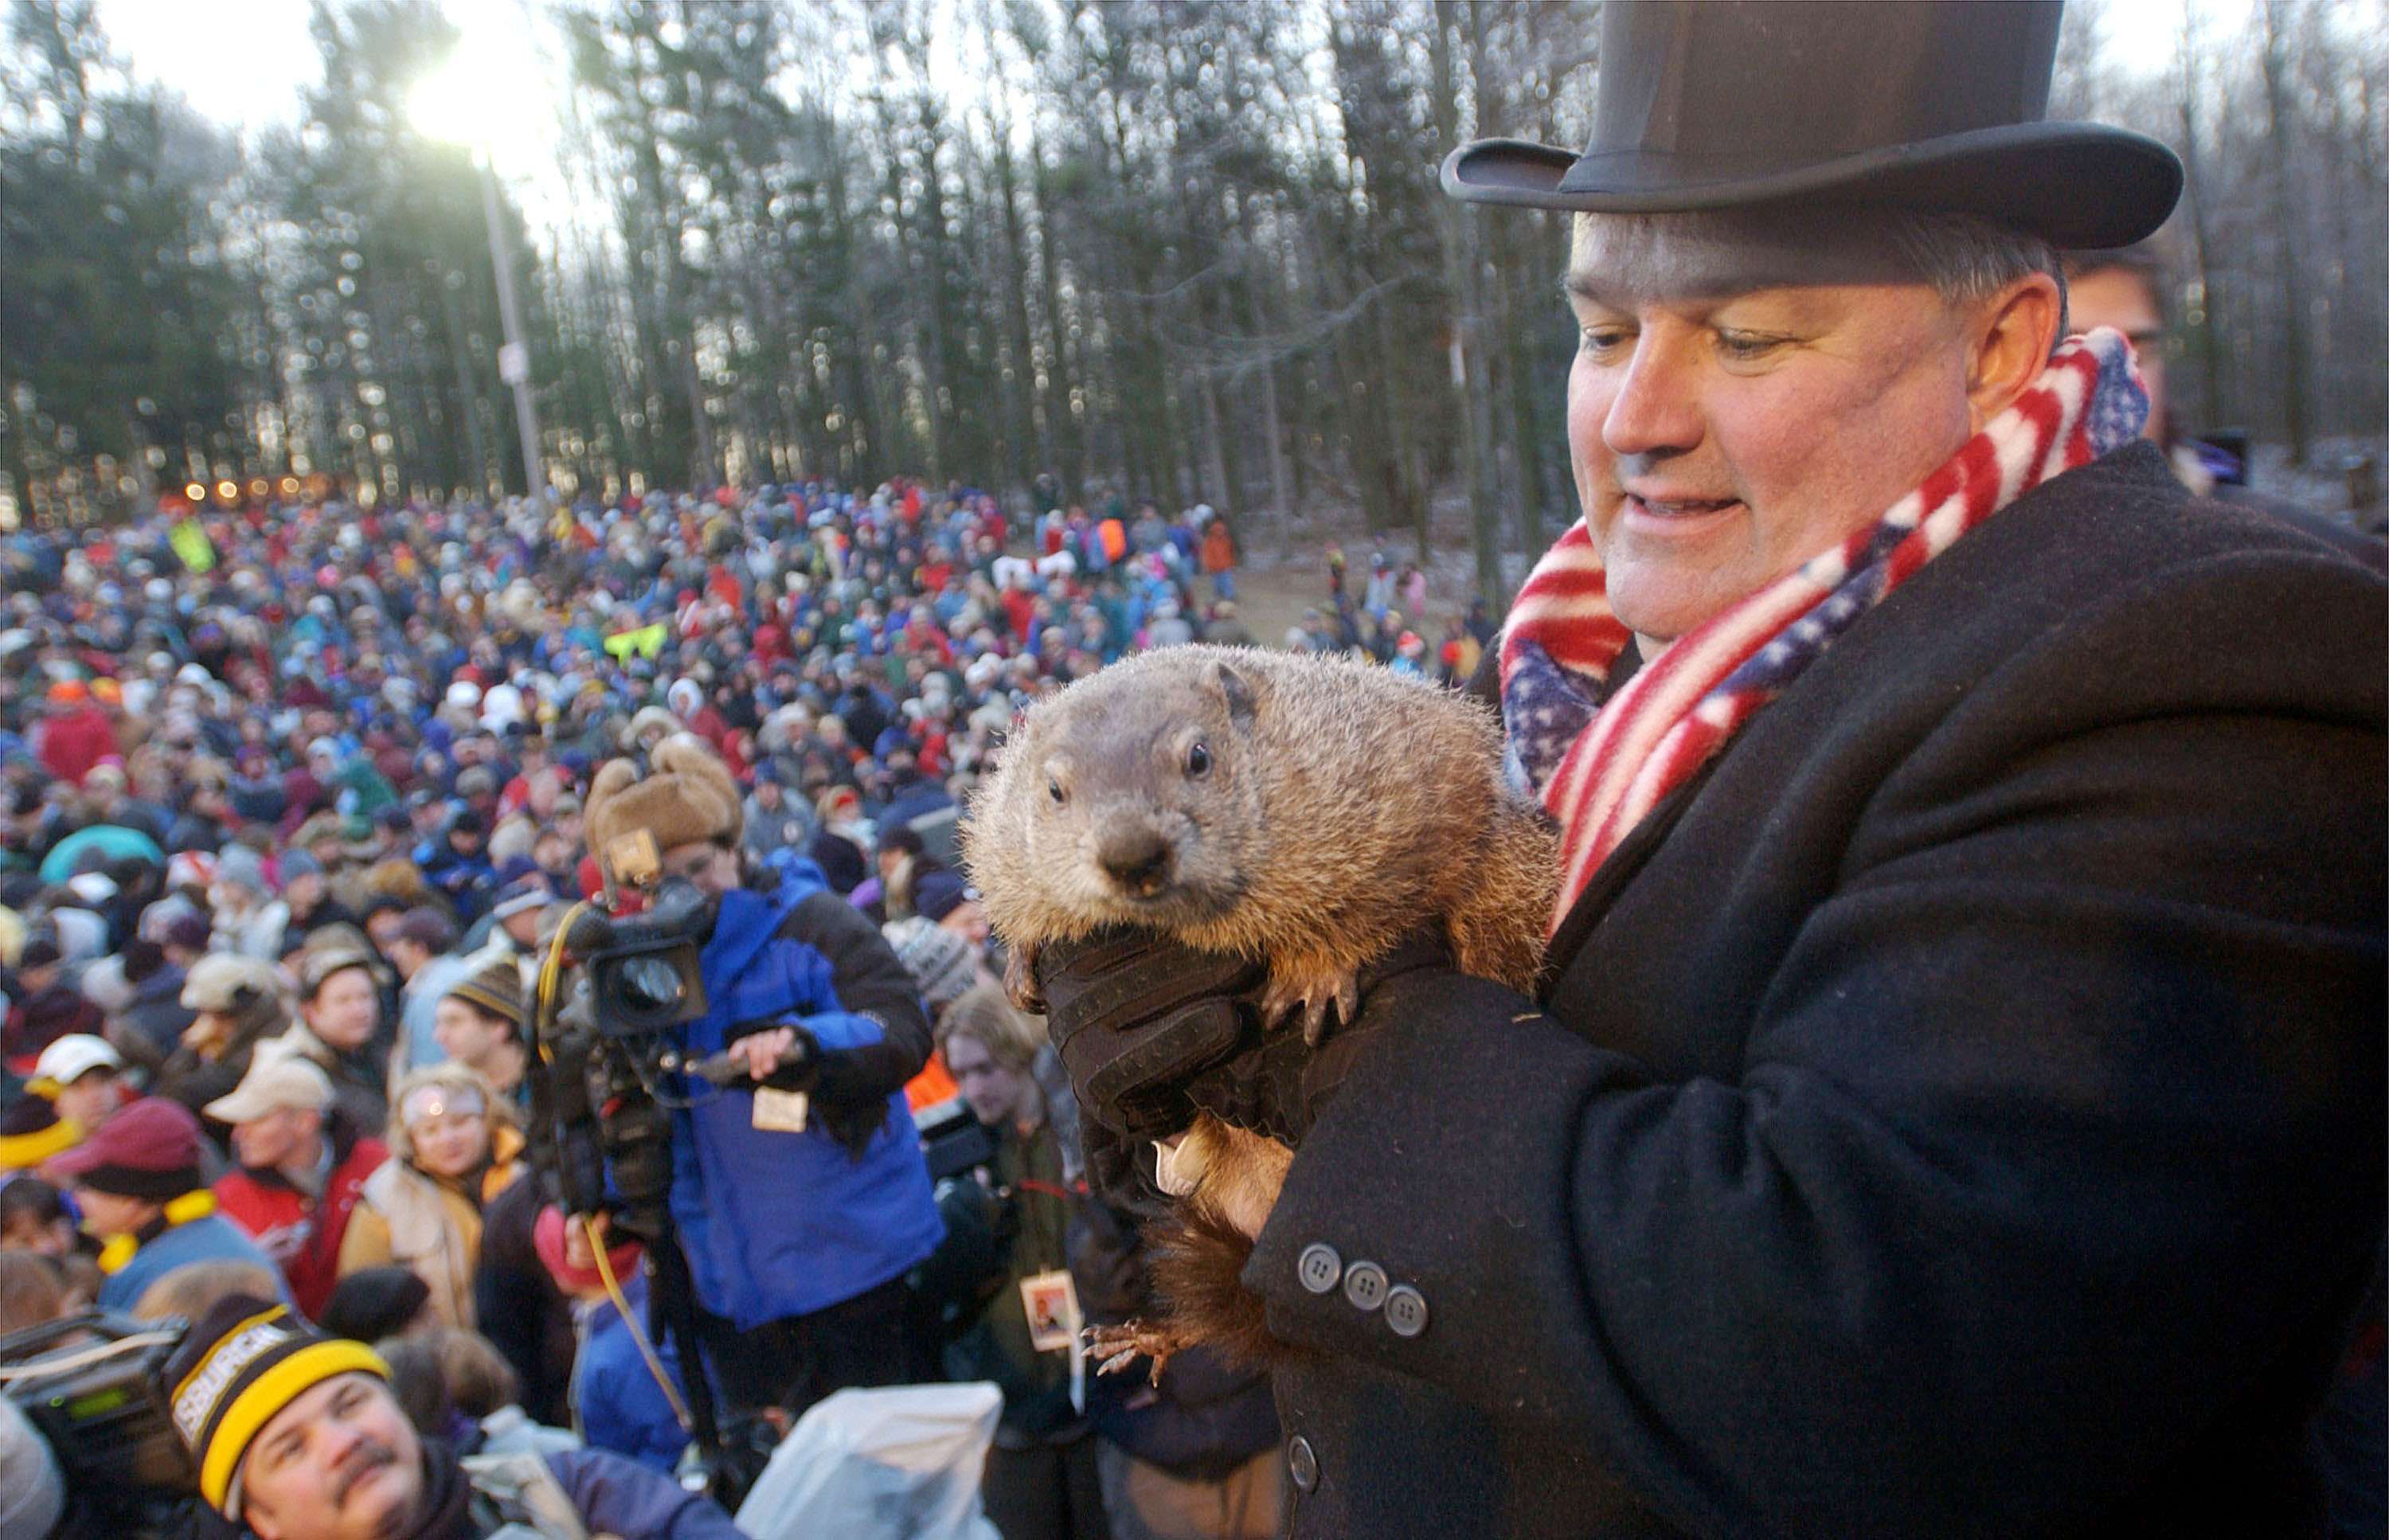 Groundhog Predicts Six More Weeks